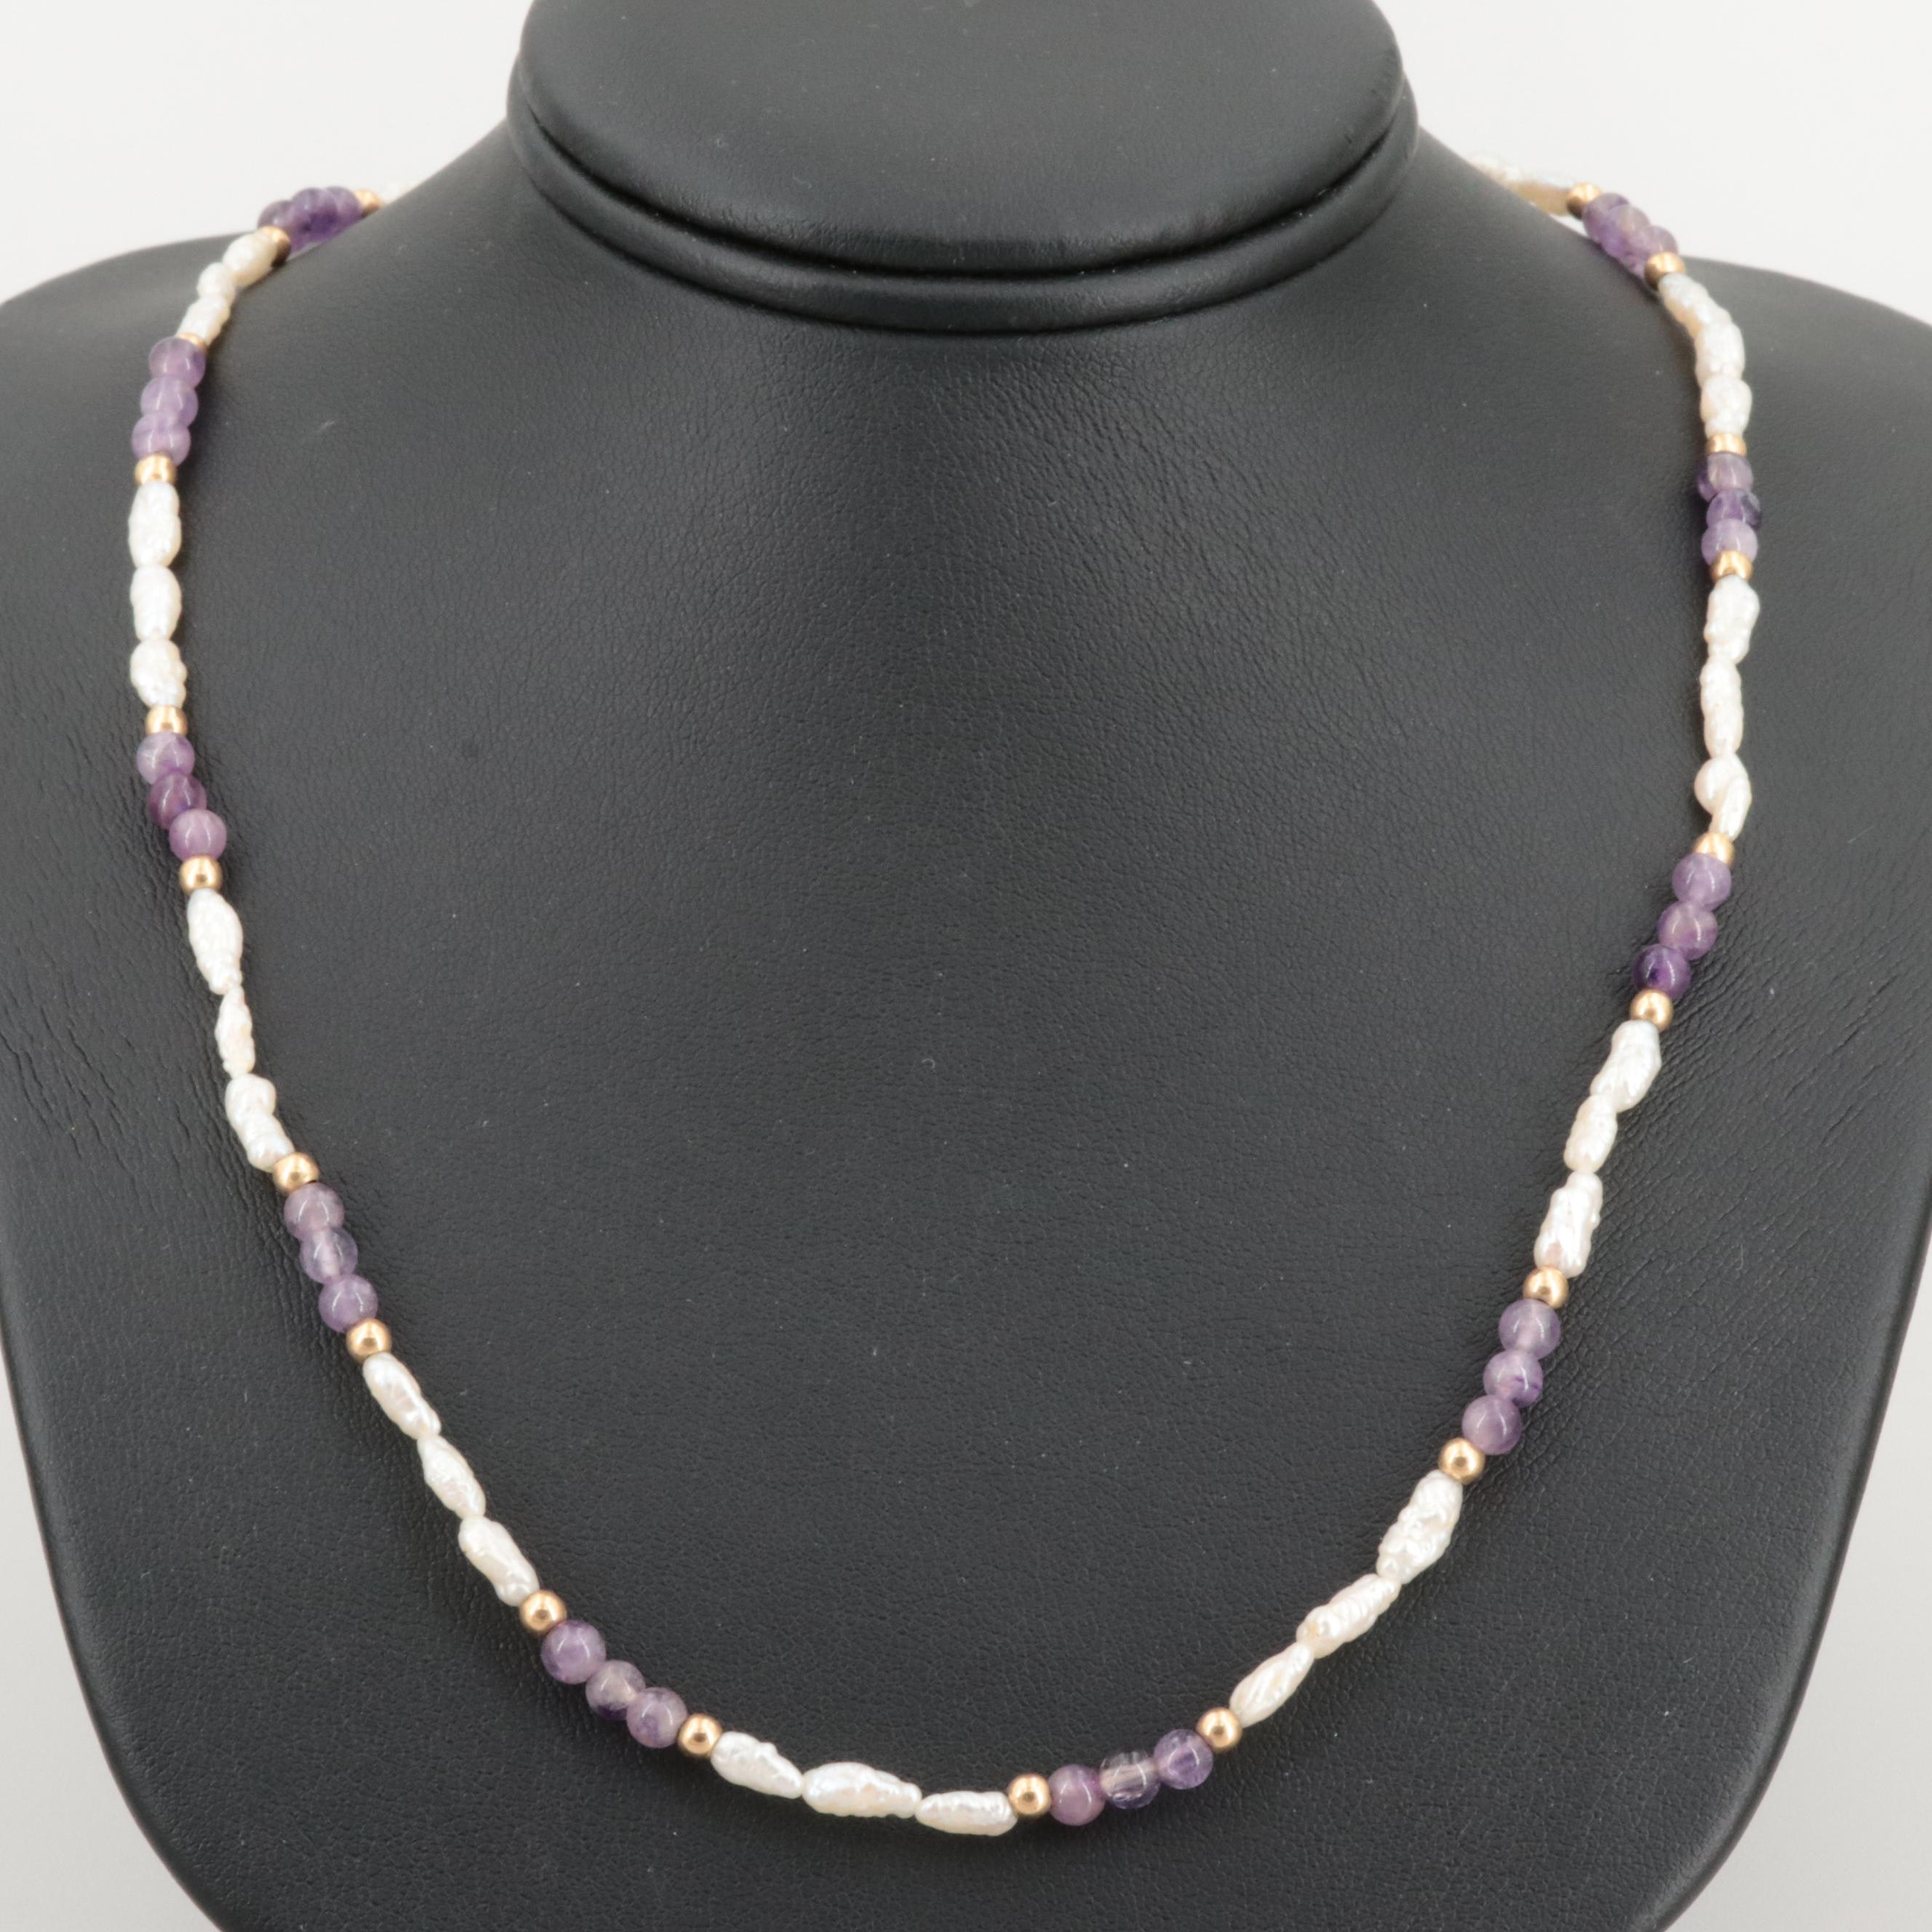 14K Yellow Gold Cultured Pearl and Amethyst Necklace